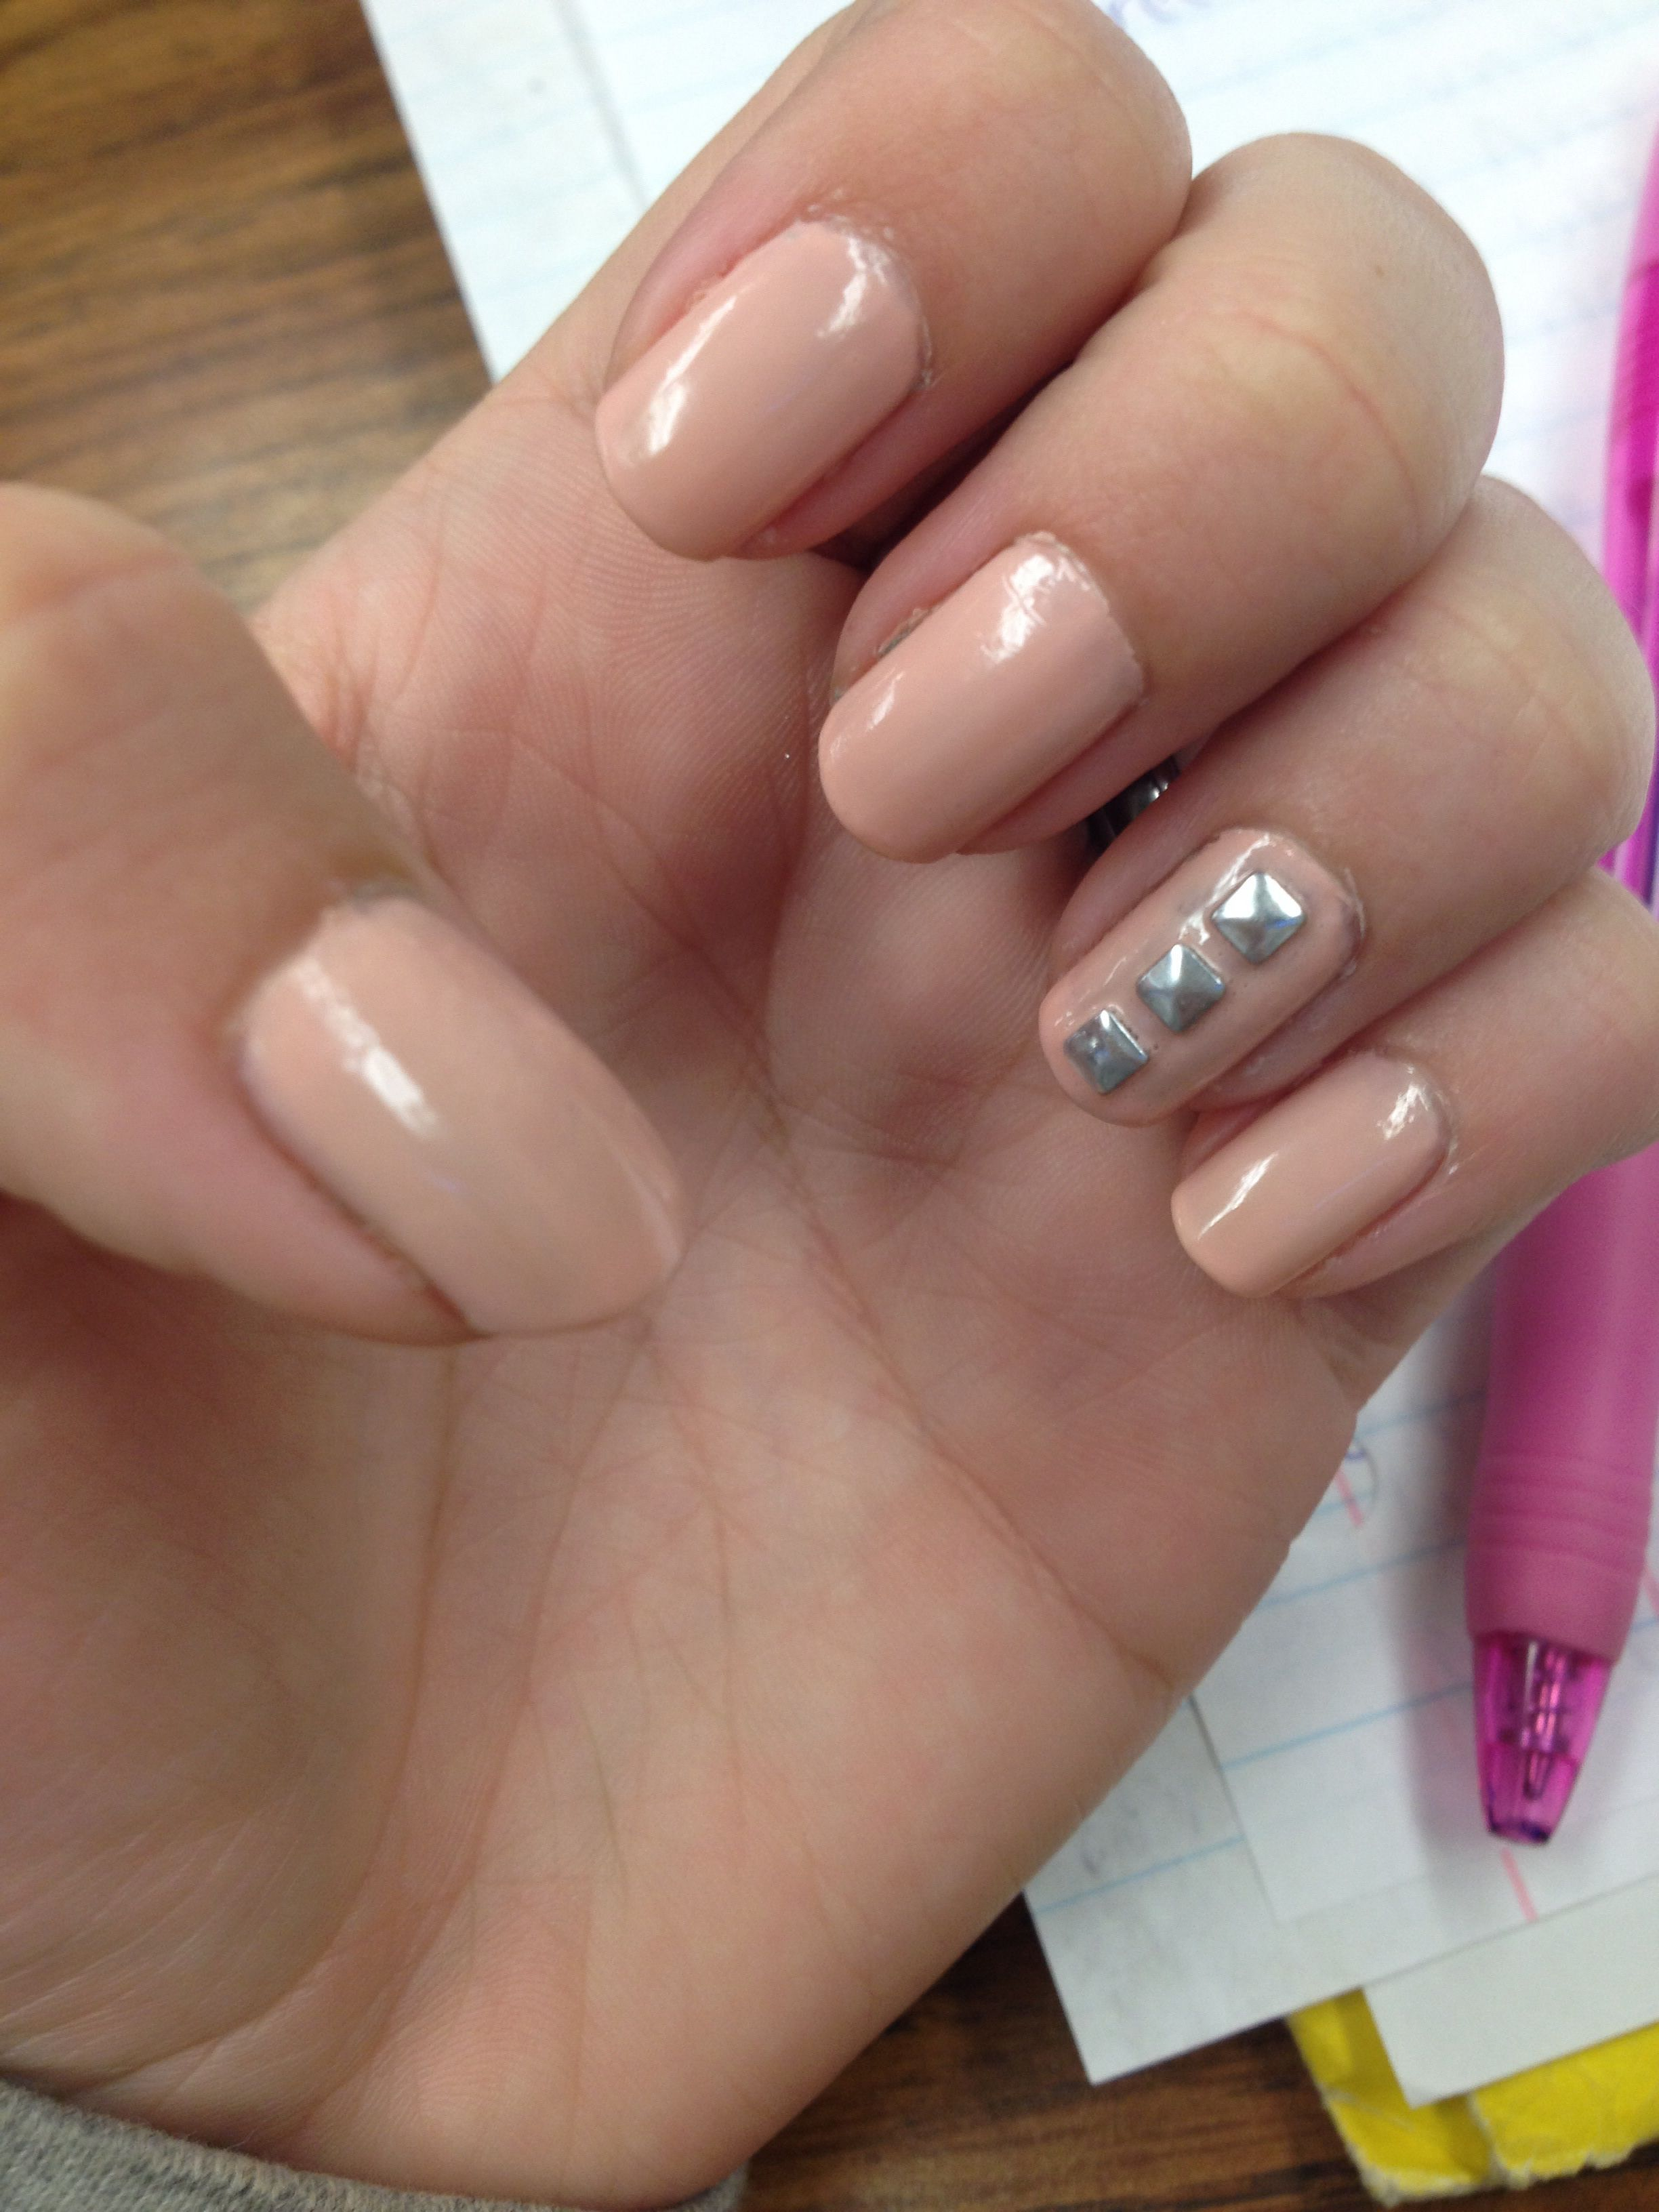 nude tan peach colored nails nail art cute sophisticated nail jewels ...